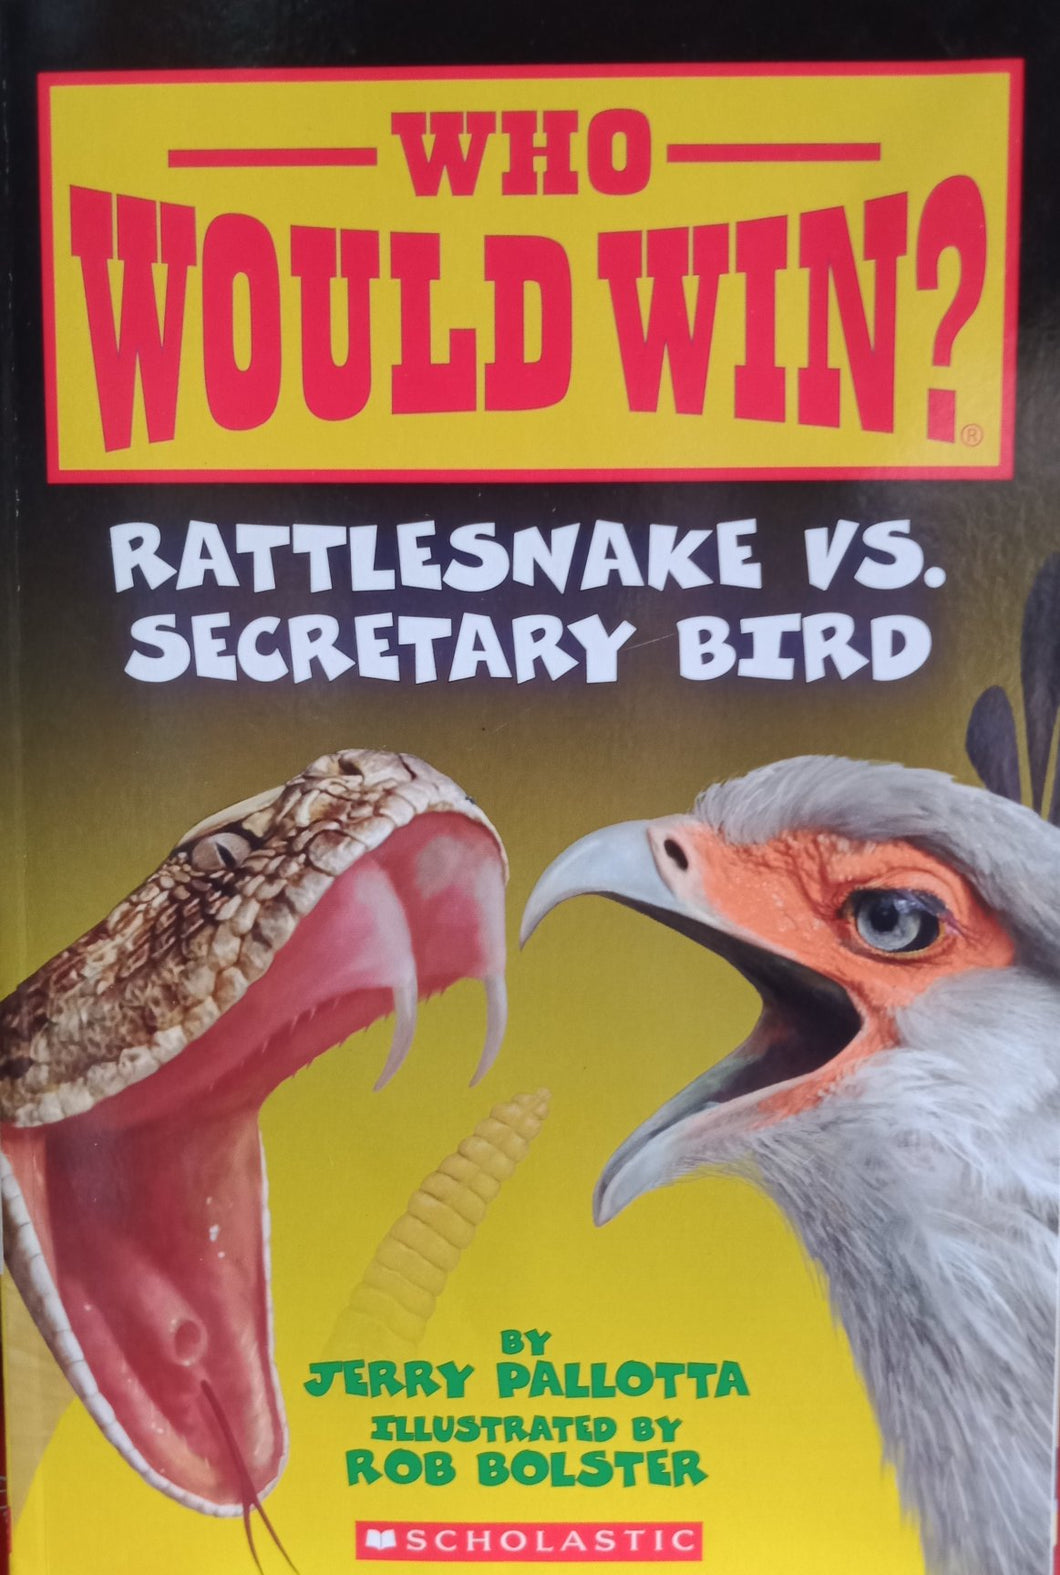 Rattlesnake vs secretary bird by jerry pallotta